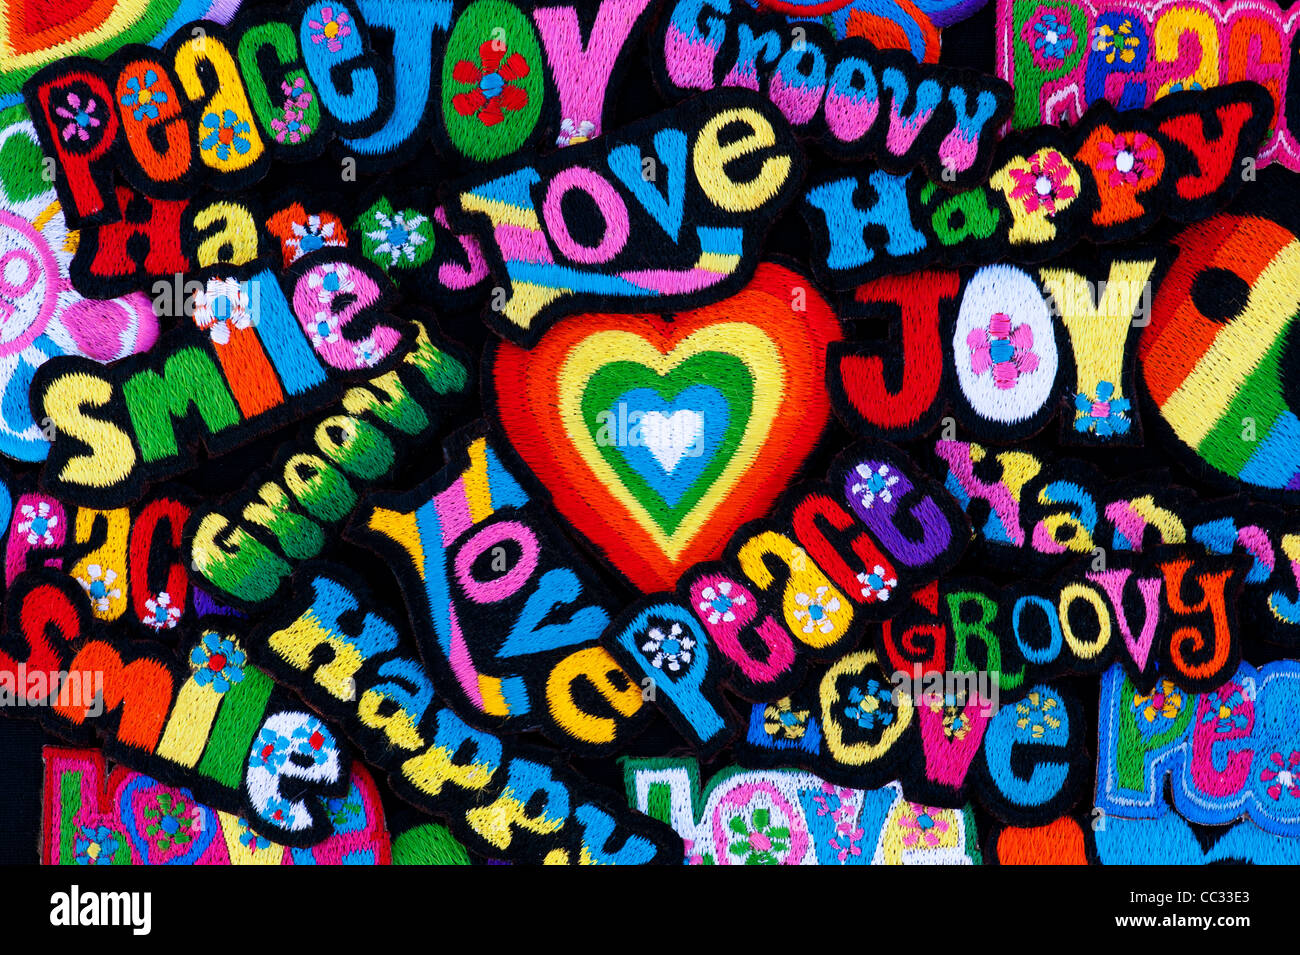 Embroidery iron on patches of Multicoloured Love, Peace, Happy words with hearts on a black background - Stock Image